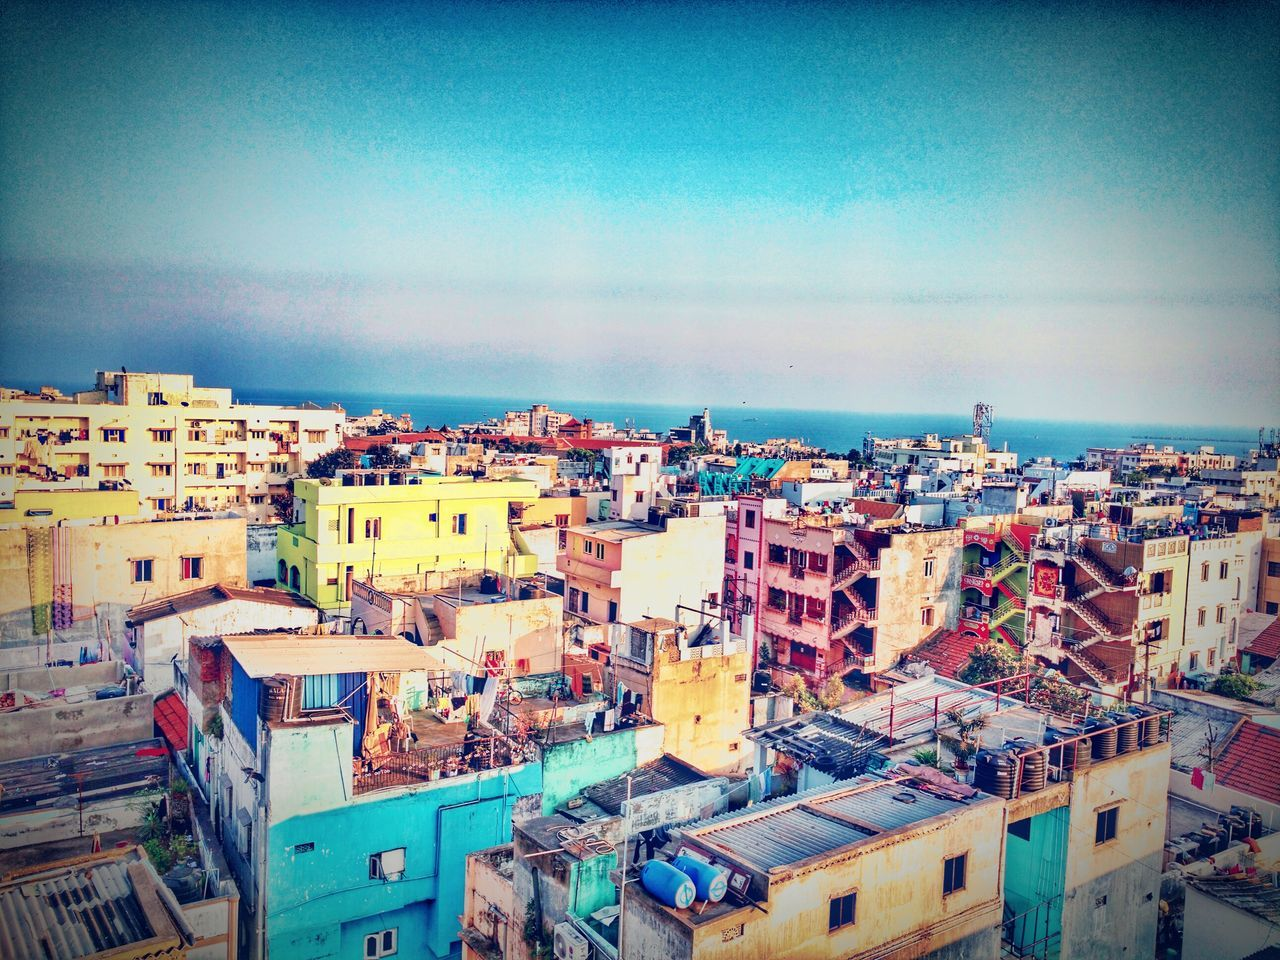 Sky Tranquility Visakhapatnam High Angle View City Crowded Rooftop City Life Cityscape Clear Sky Blue